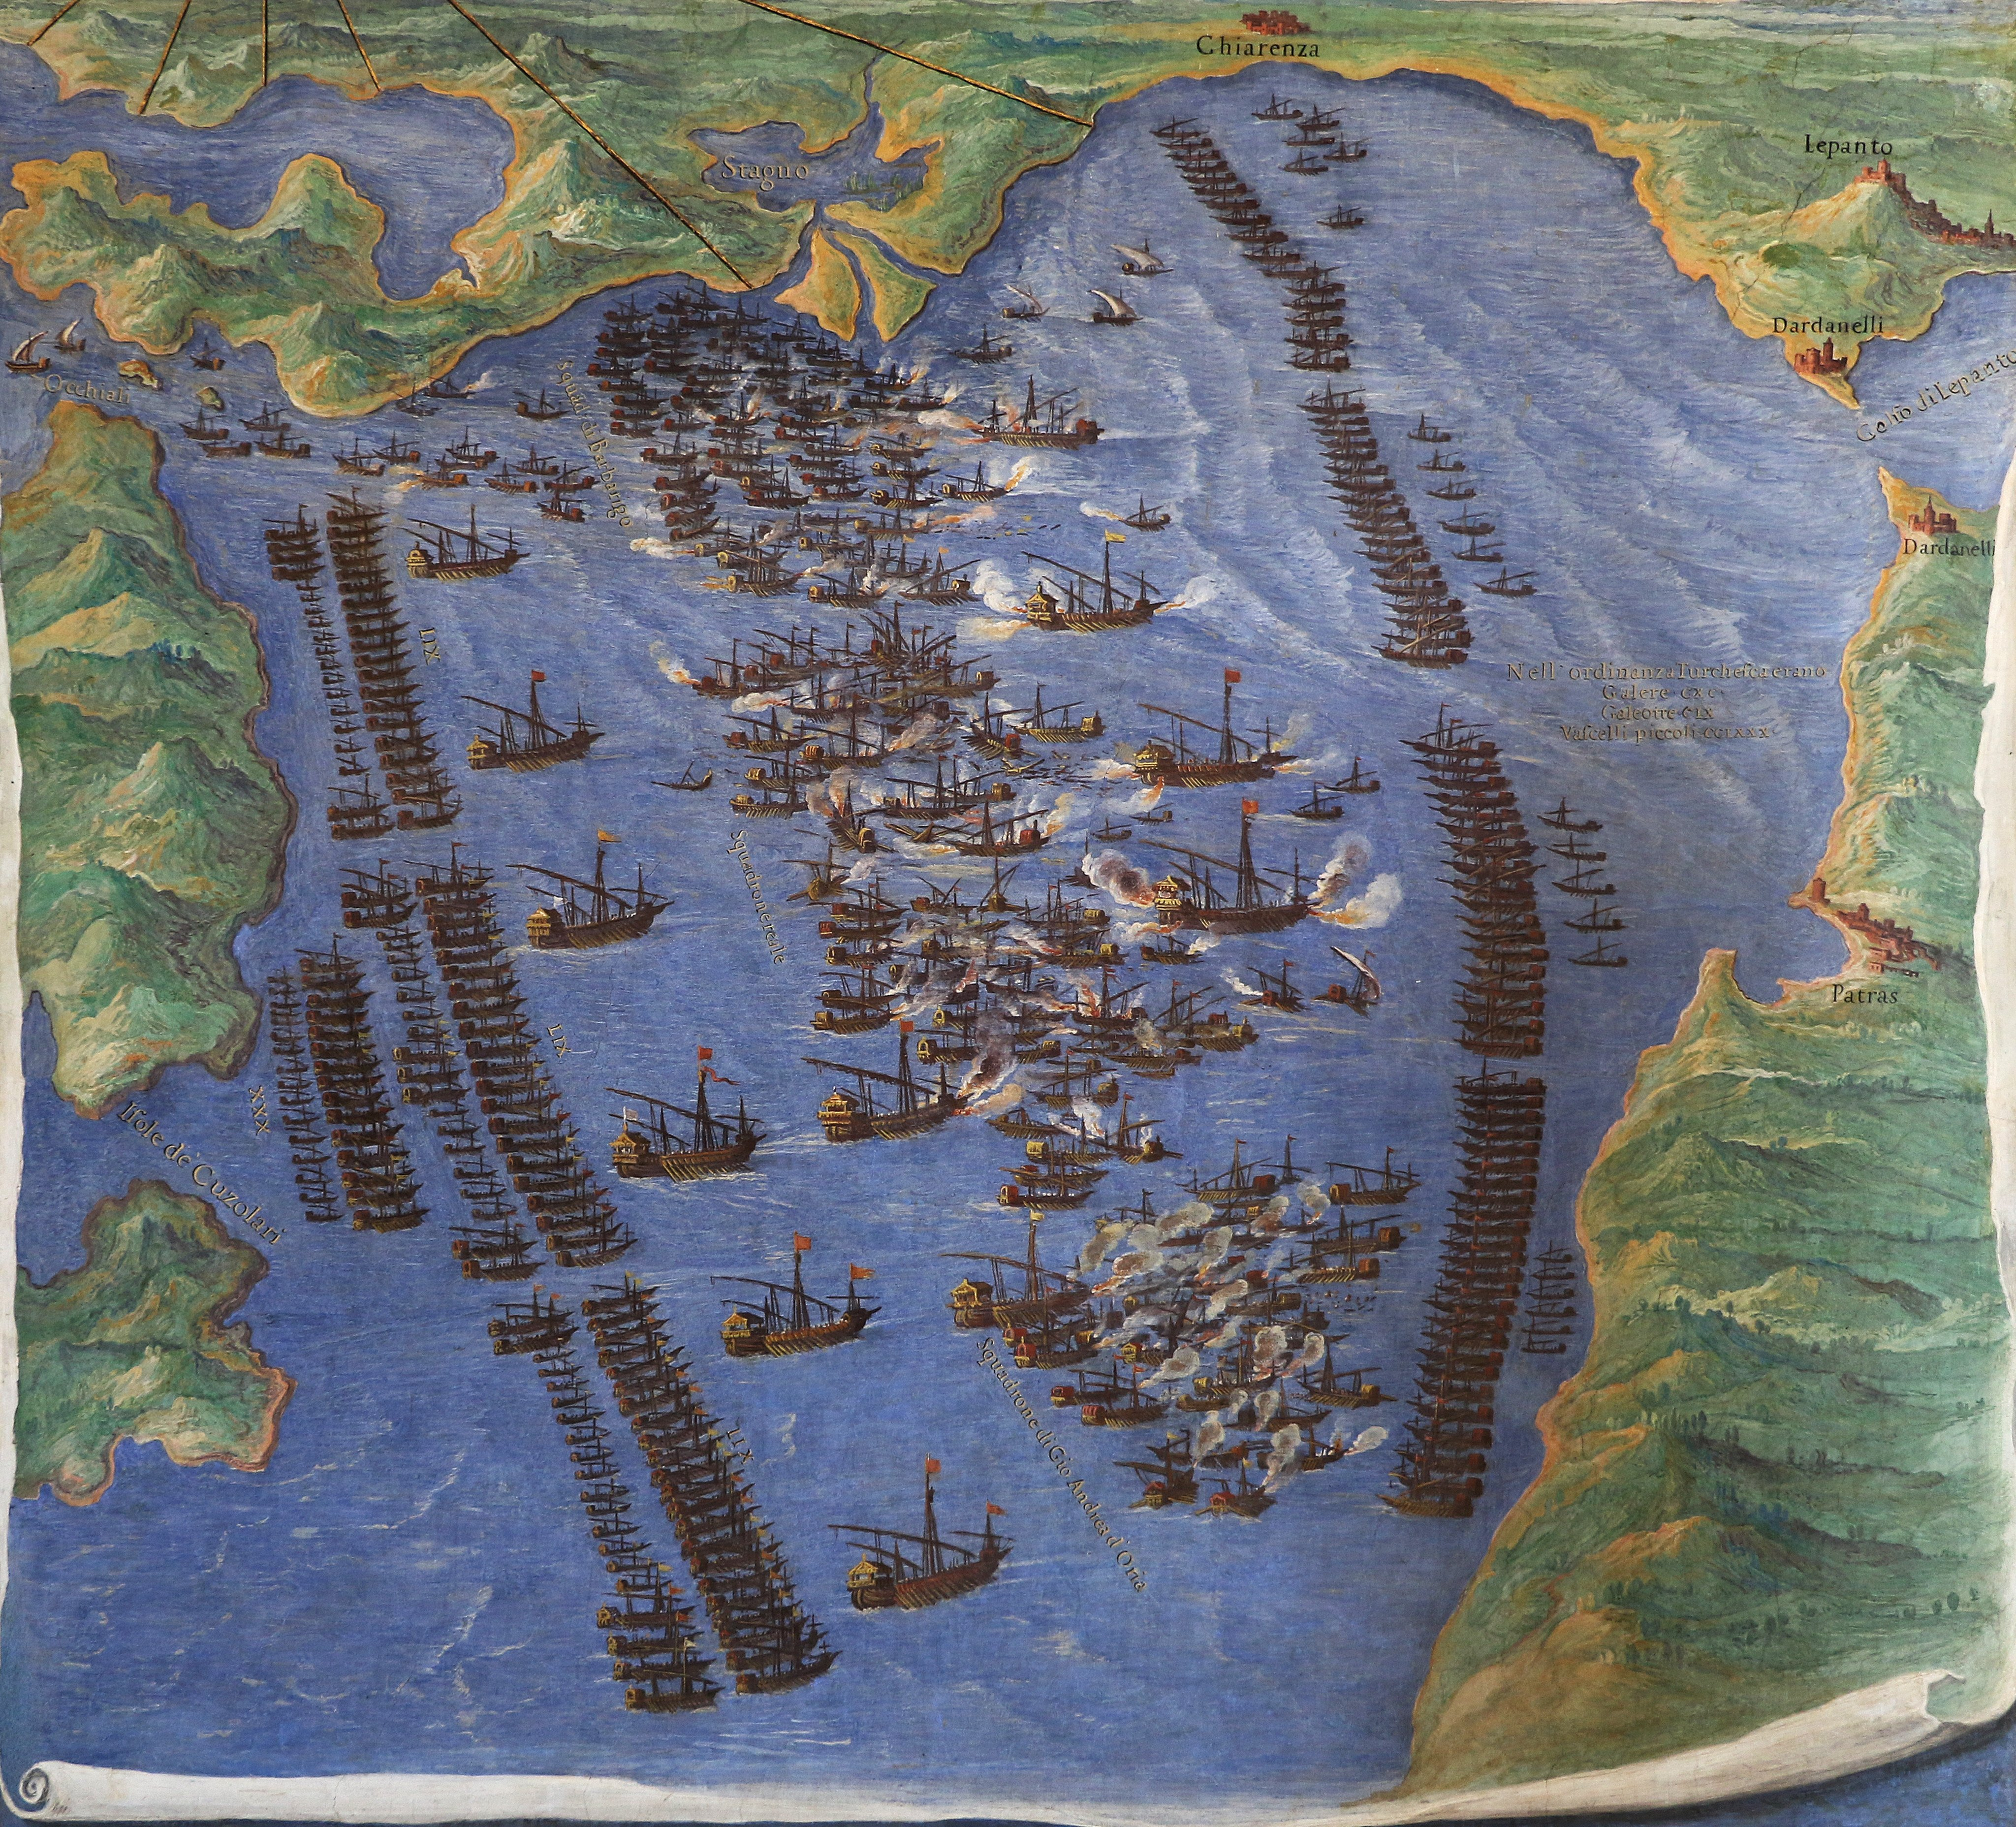 View of the Battle of Lepanto, from Wikipedia